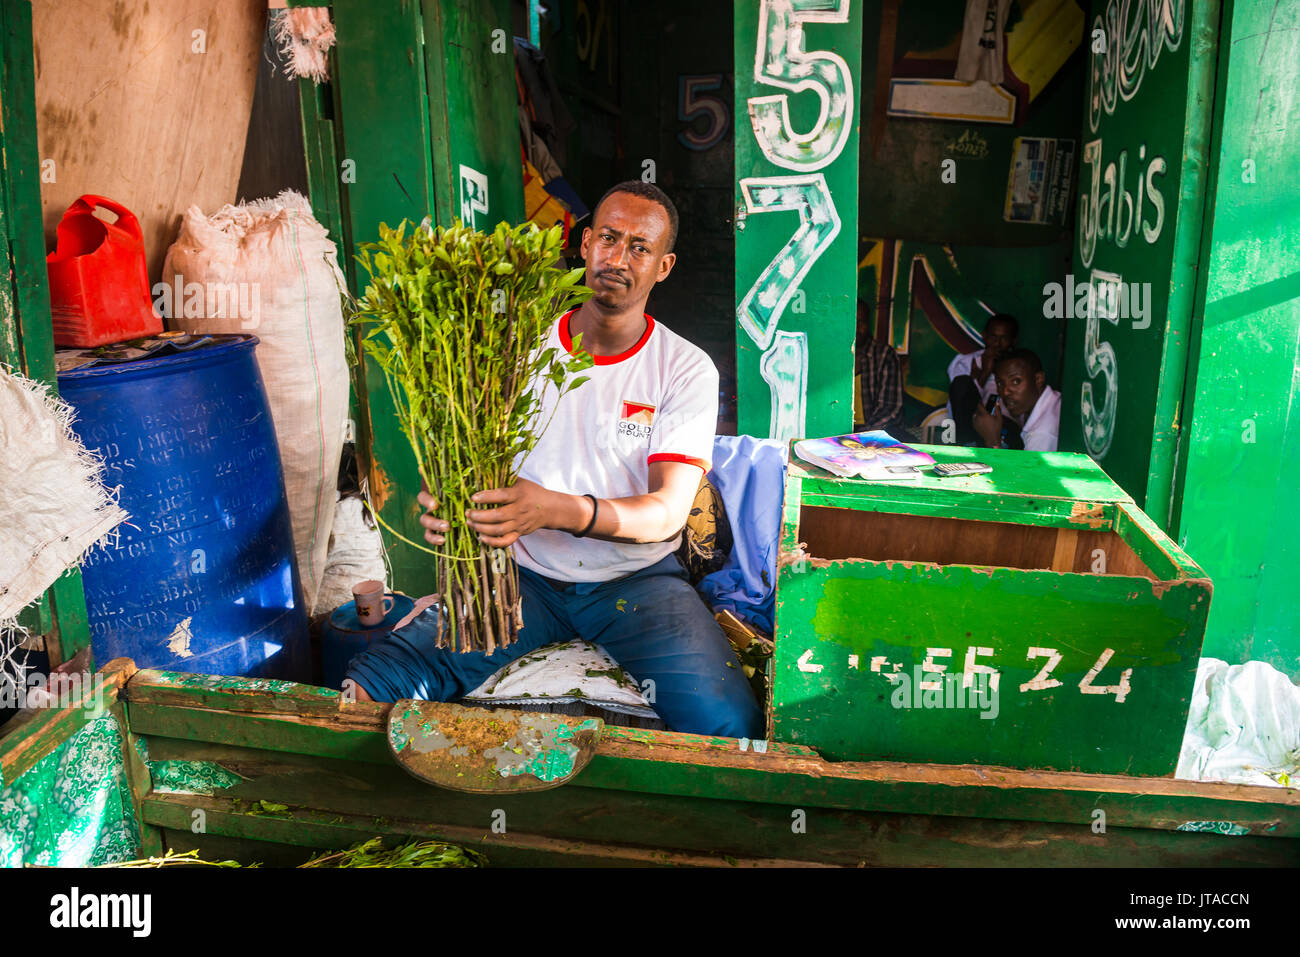 Man selling khat in the market of Hargeisa, Somaliland, Somalia, Africa - Stock Image